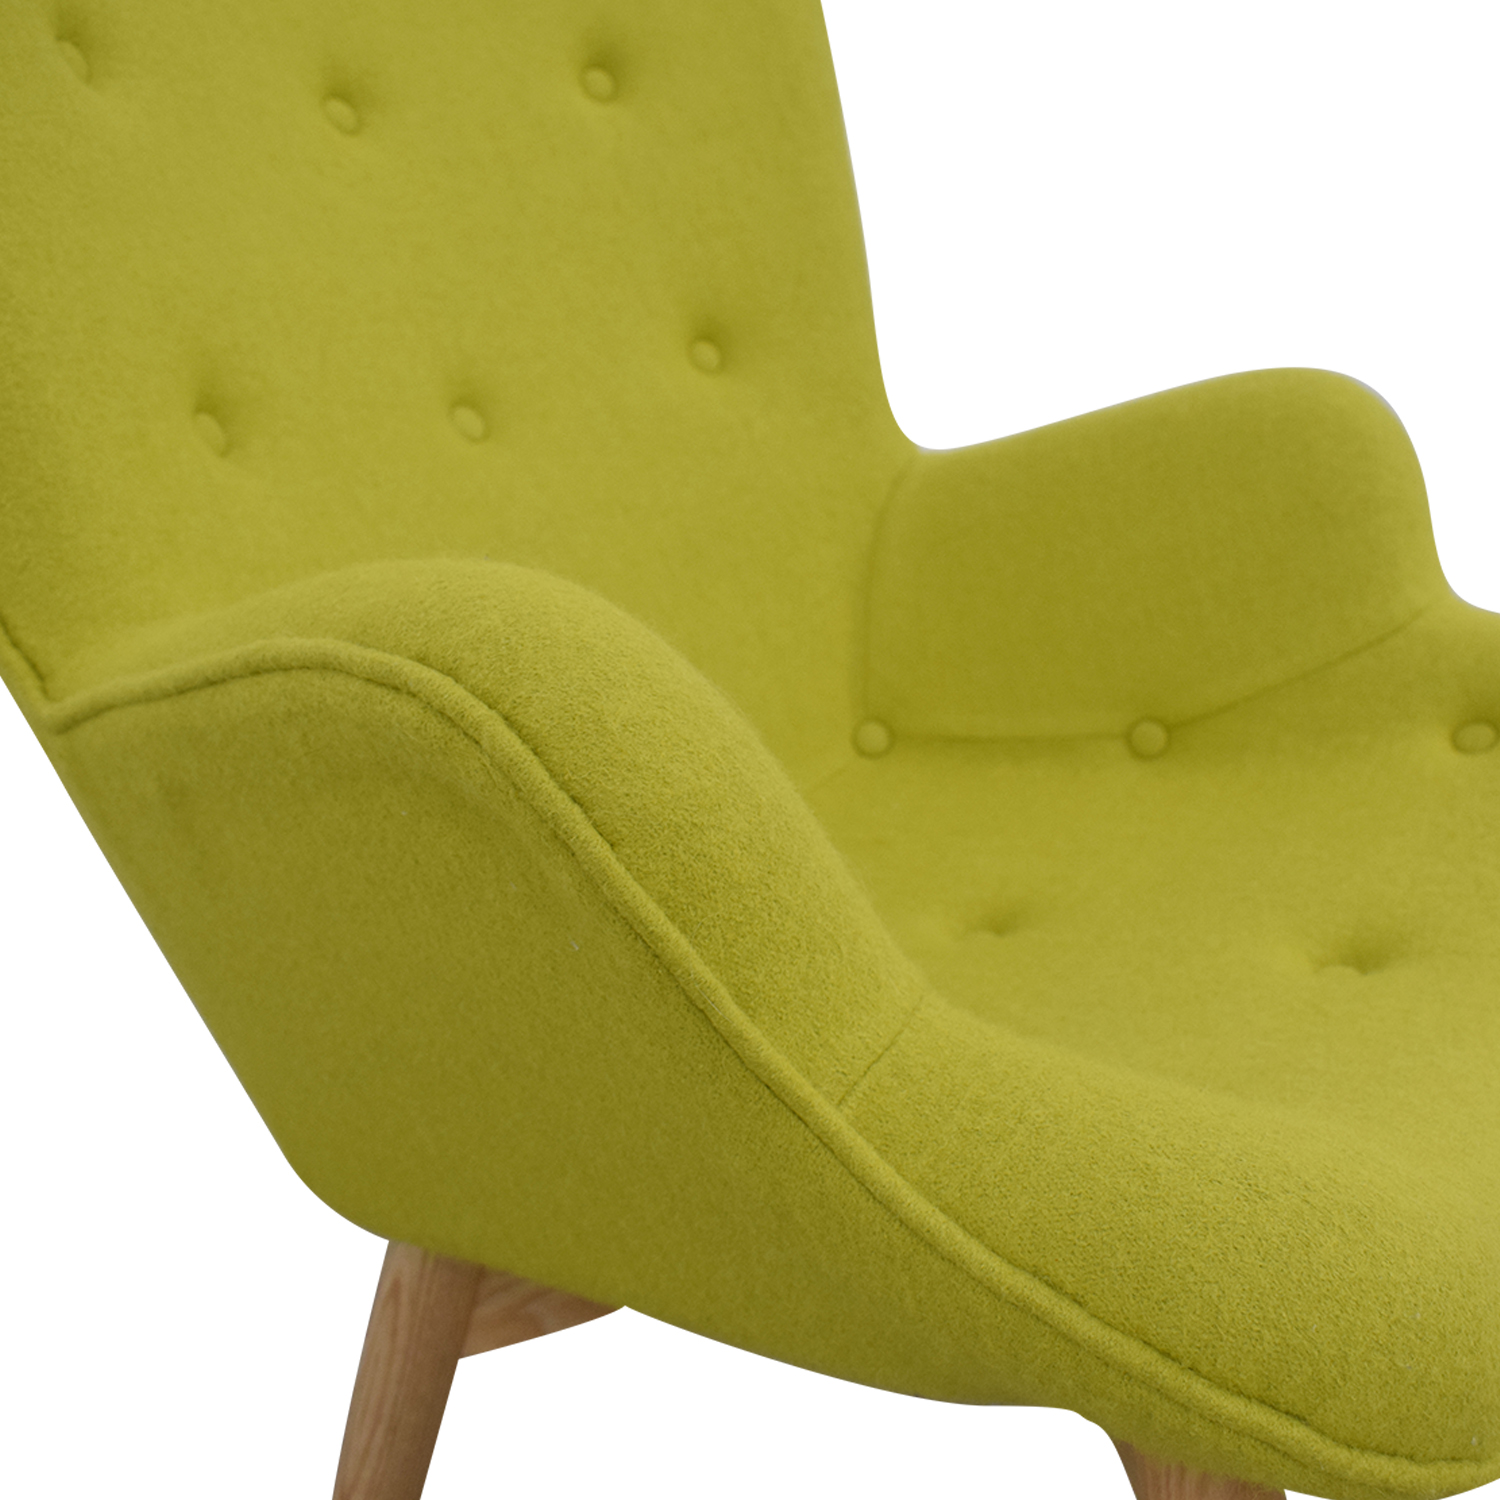 Kardiel Kardiel Contour Chair and Ottoman on sale